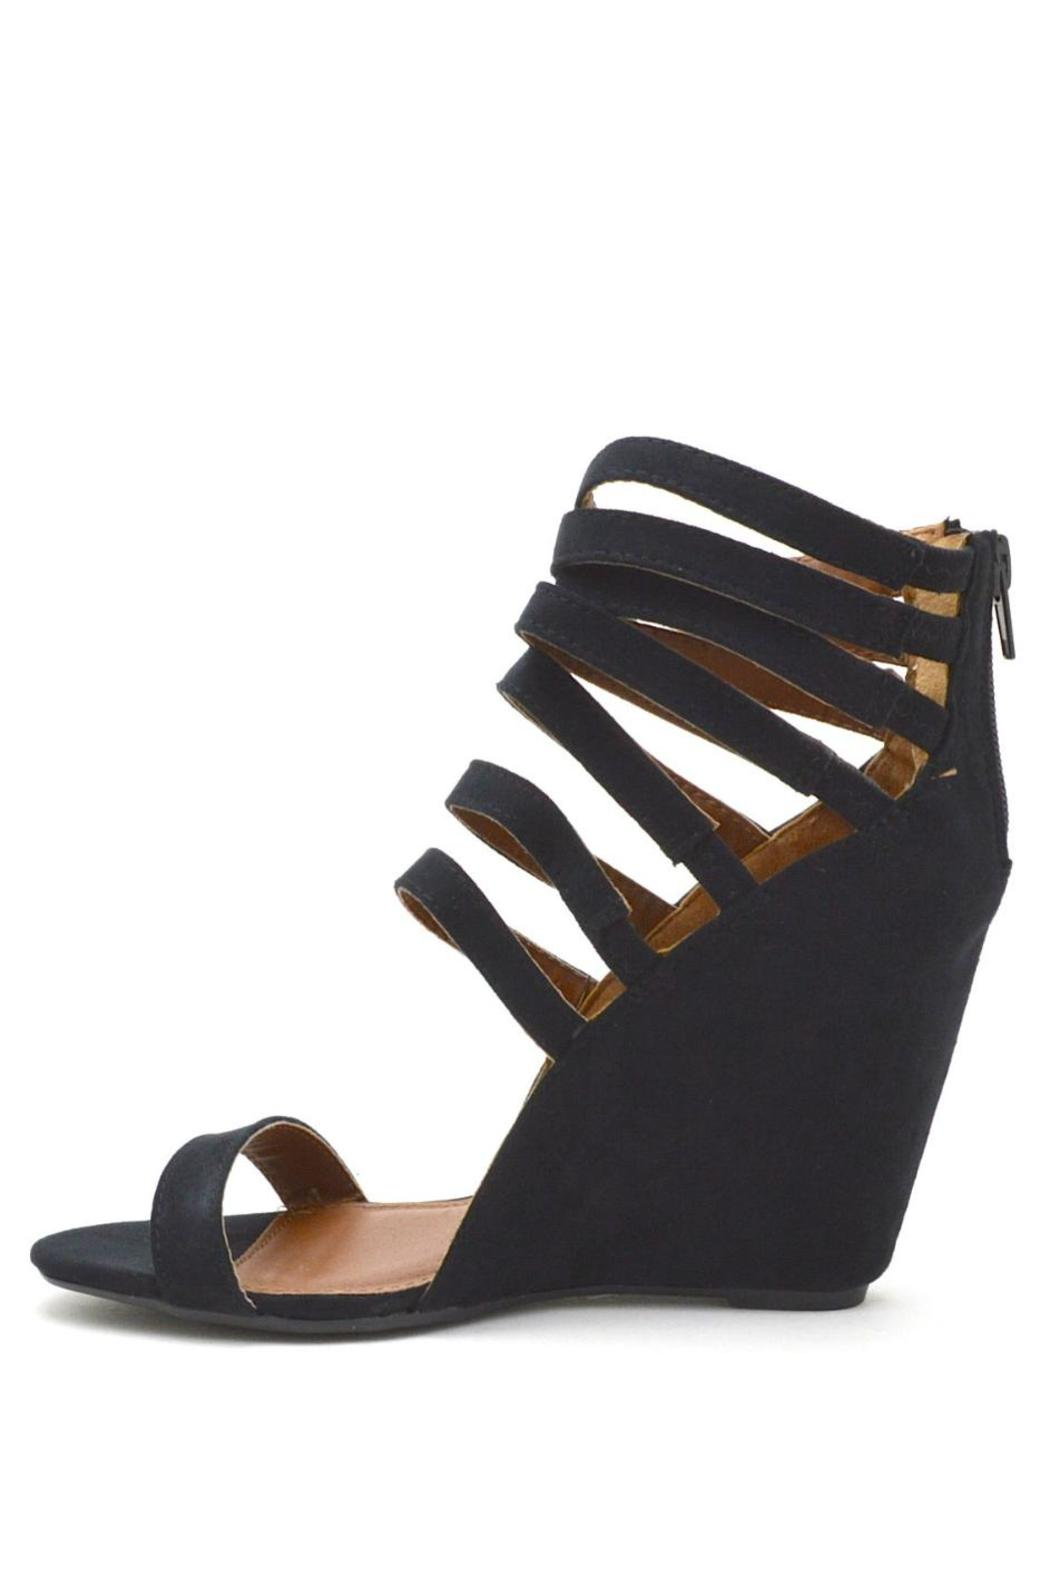 Qupid Strappy Open-Toe Wedge - Main Image